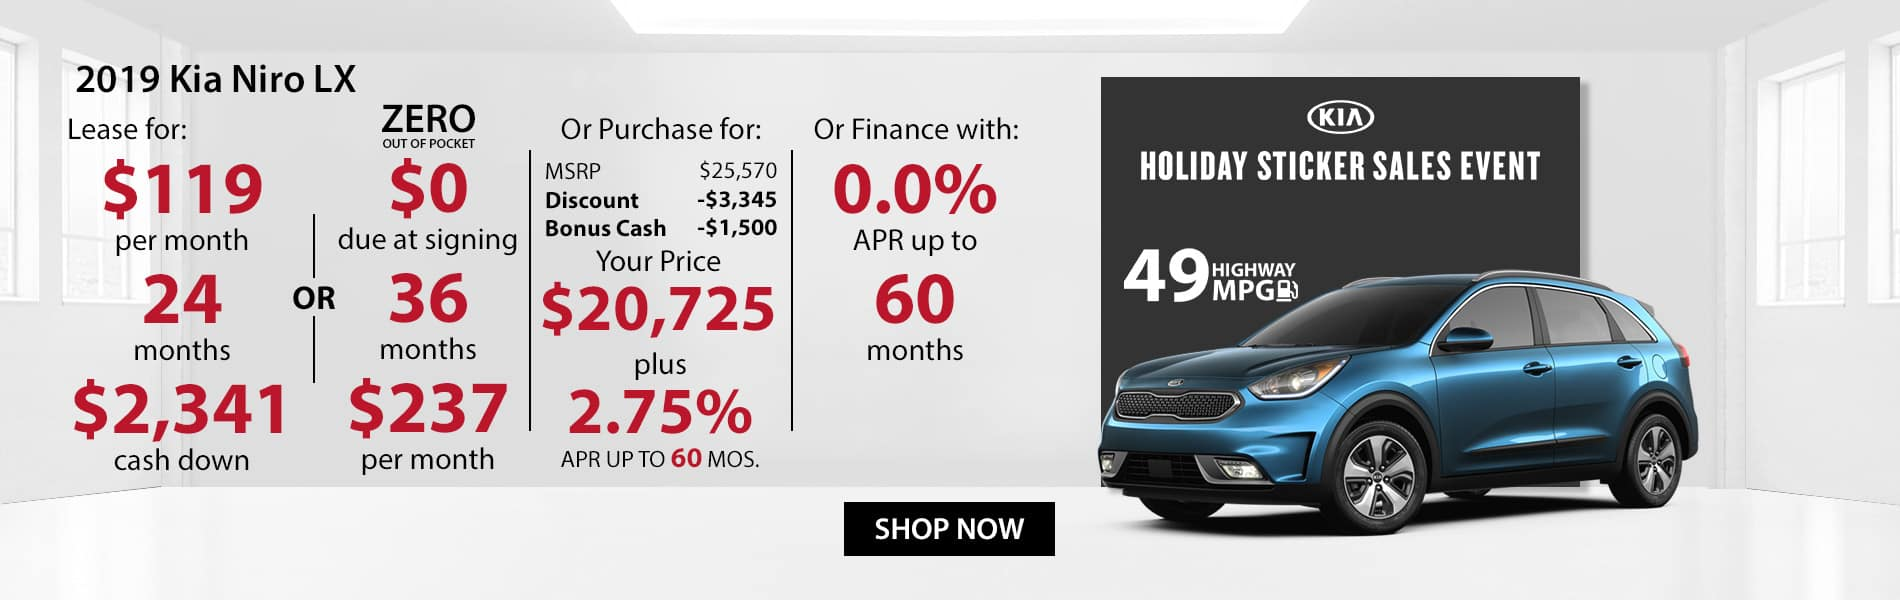 Special offer on 2019 Kia Niro LX Lease for $119 with $2,341 down or Purchase for $20,725 with 2.75% APR or get 0% APR for 60 months.